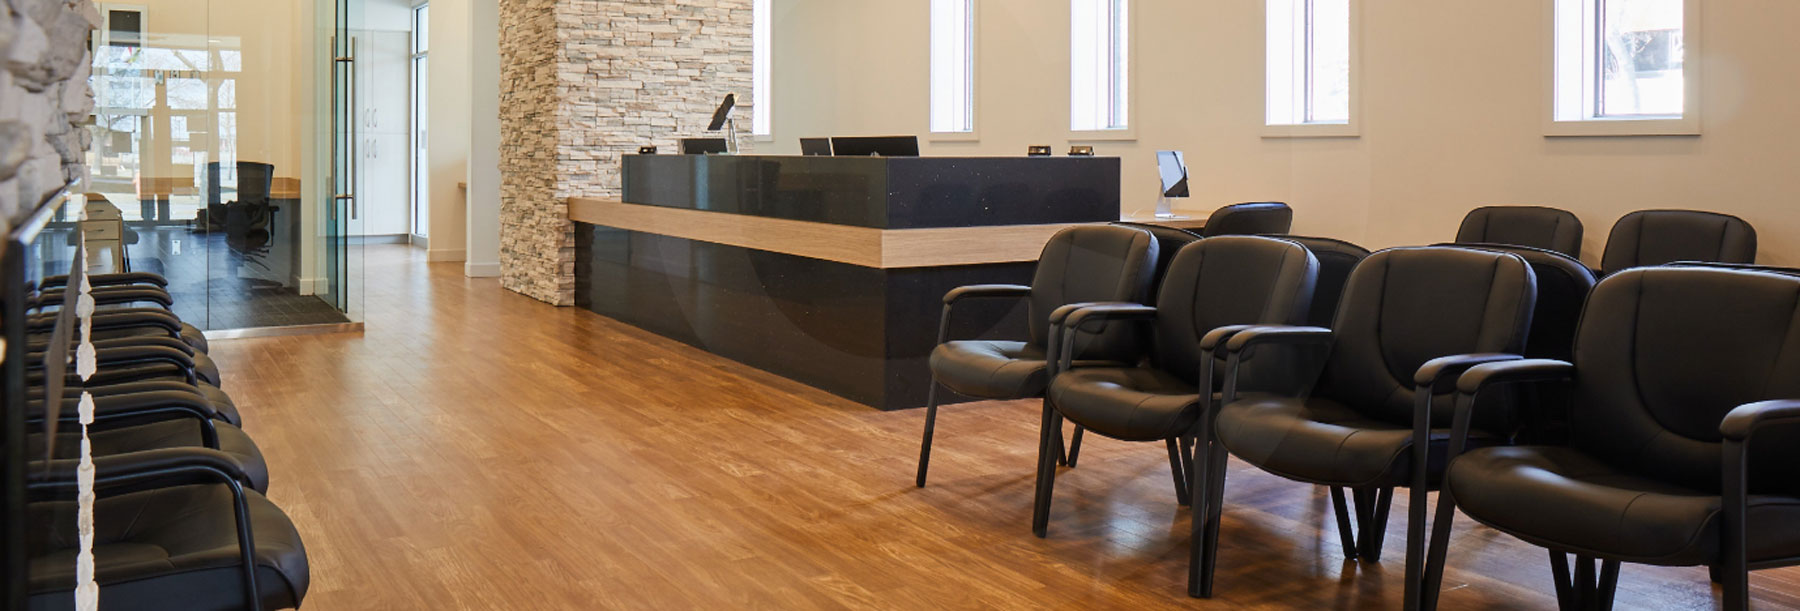 Yorkton Dental Office